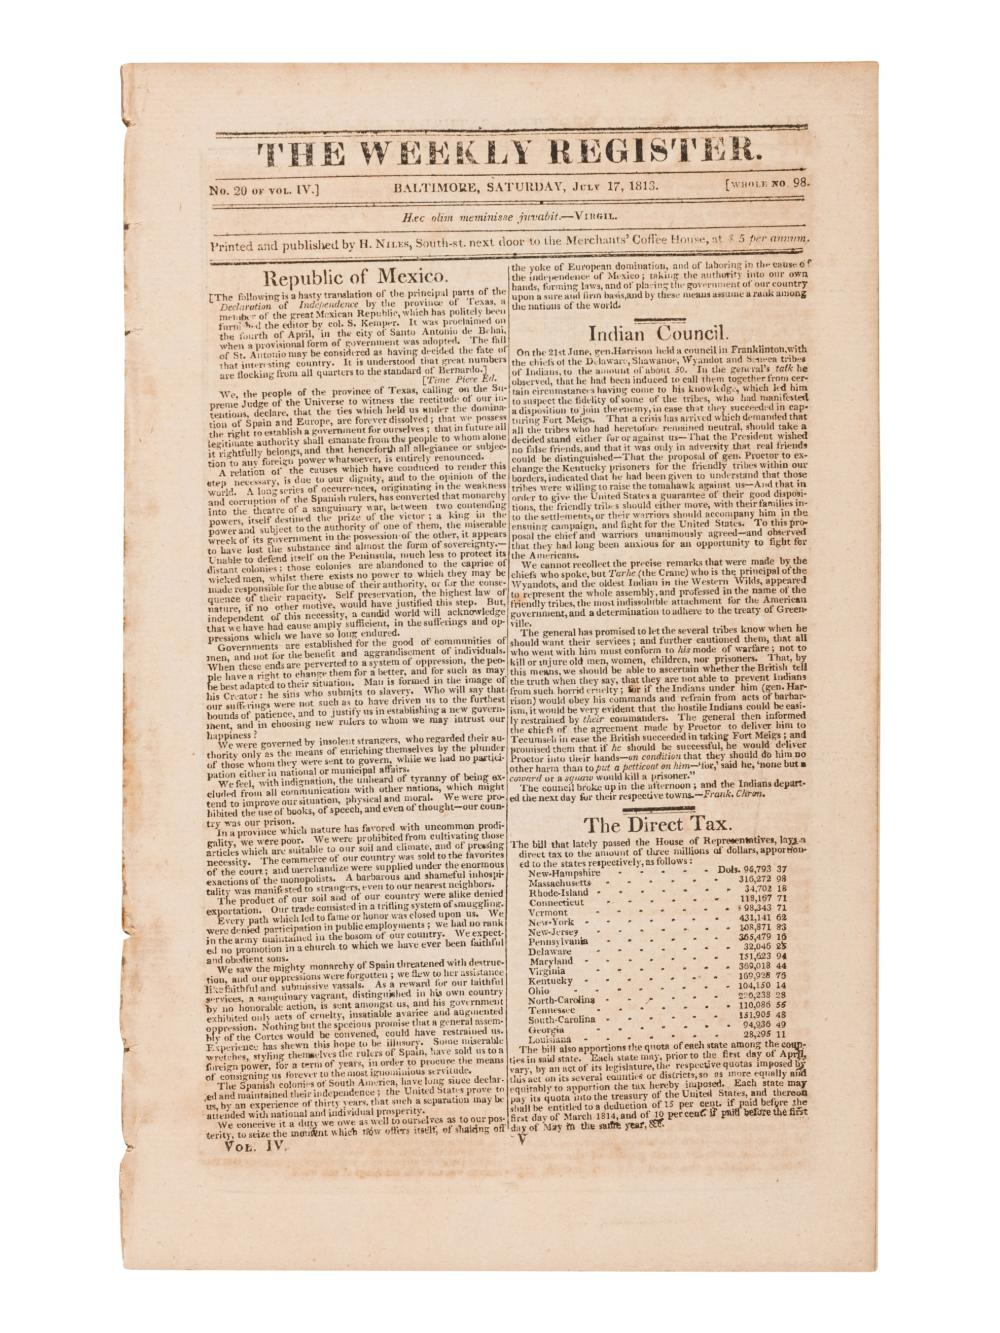 [NEWSPAPER - TEXAS NEWS - THE ALAMO]. Niles Weekly Register. Vol. 49 (September 5, 1835-February 27, 1836); [with] Vol. 51 (September 3, 1836-February 25, 1837); [and] Vol. 52 (March 4, 1837-August 26, 1837). Baltimore, 1835-1837.